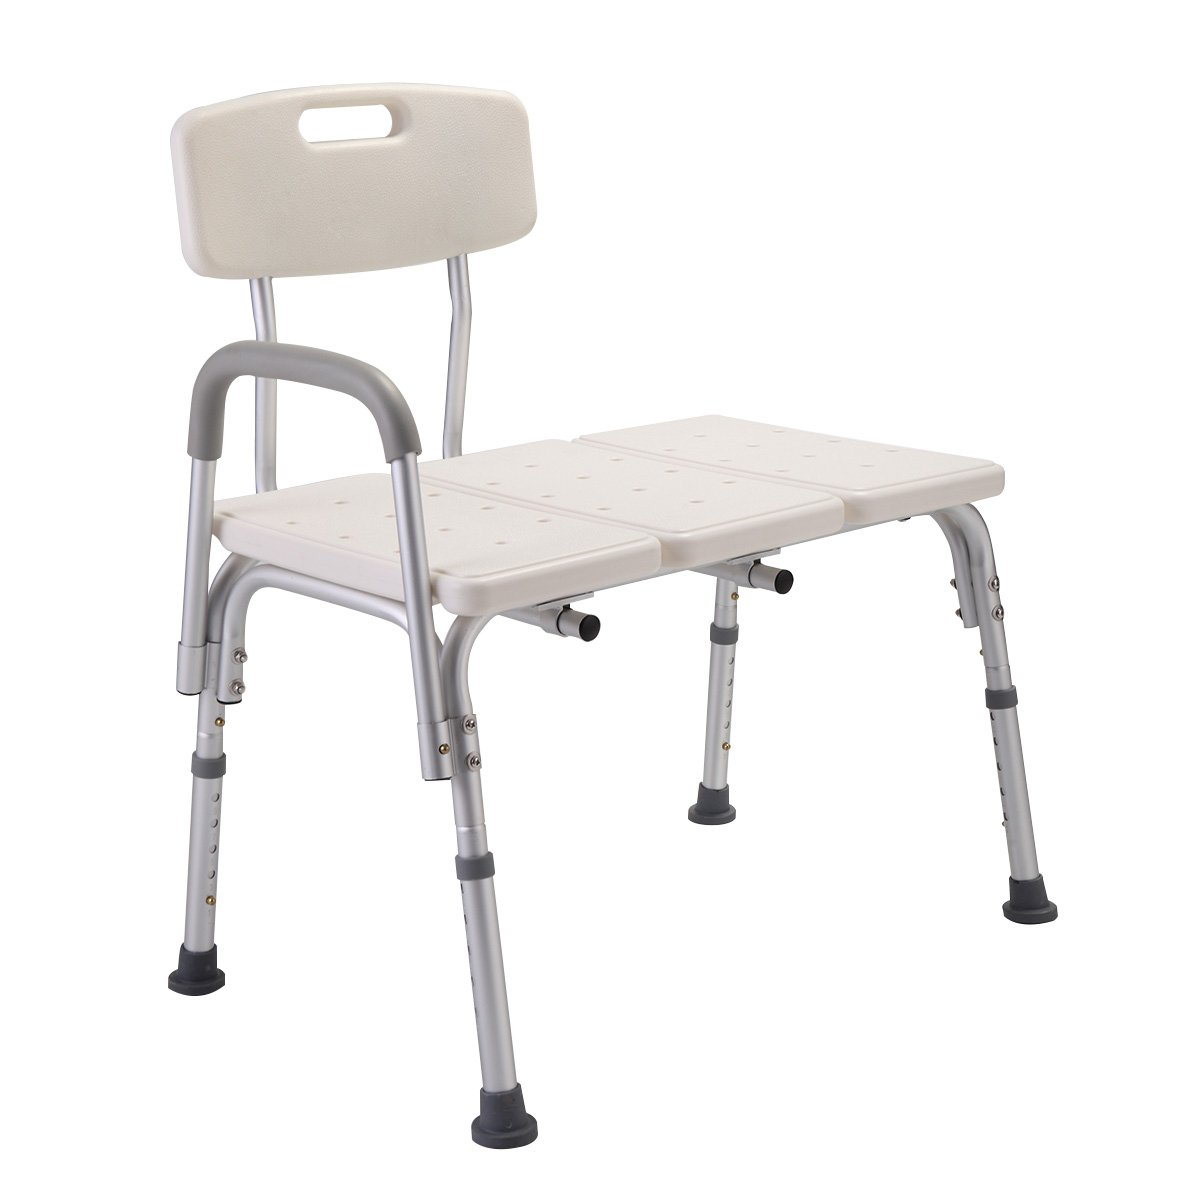 JAXPETY Medical Heavy Duty BARIATRIC Plastic SEAT Adjustable Bath and Shower Transfer Bench with Reversible Backrest